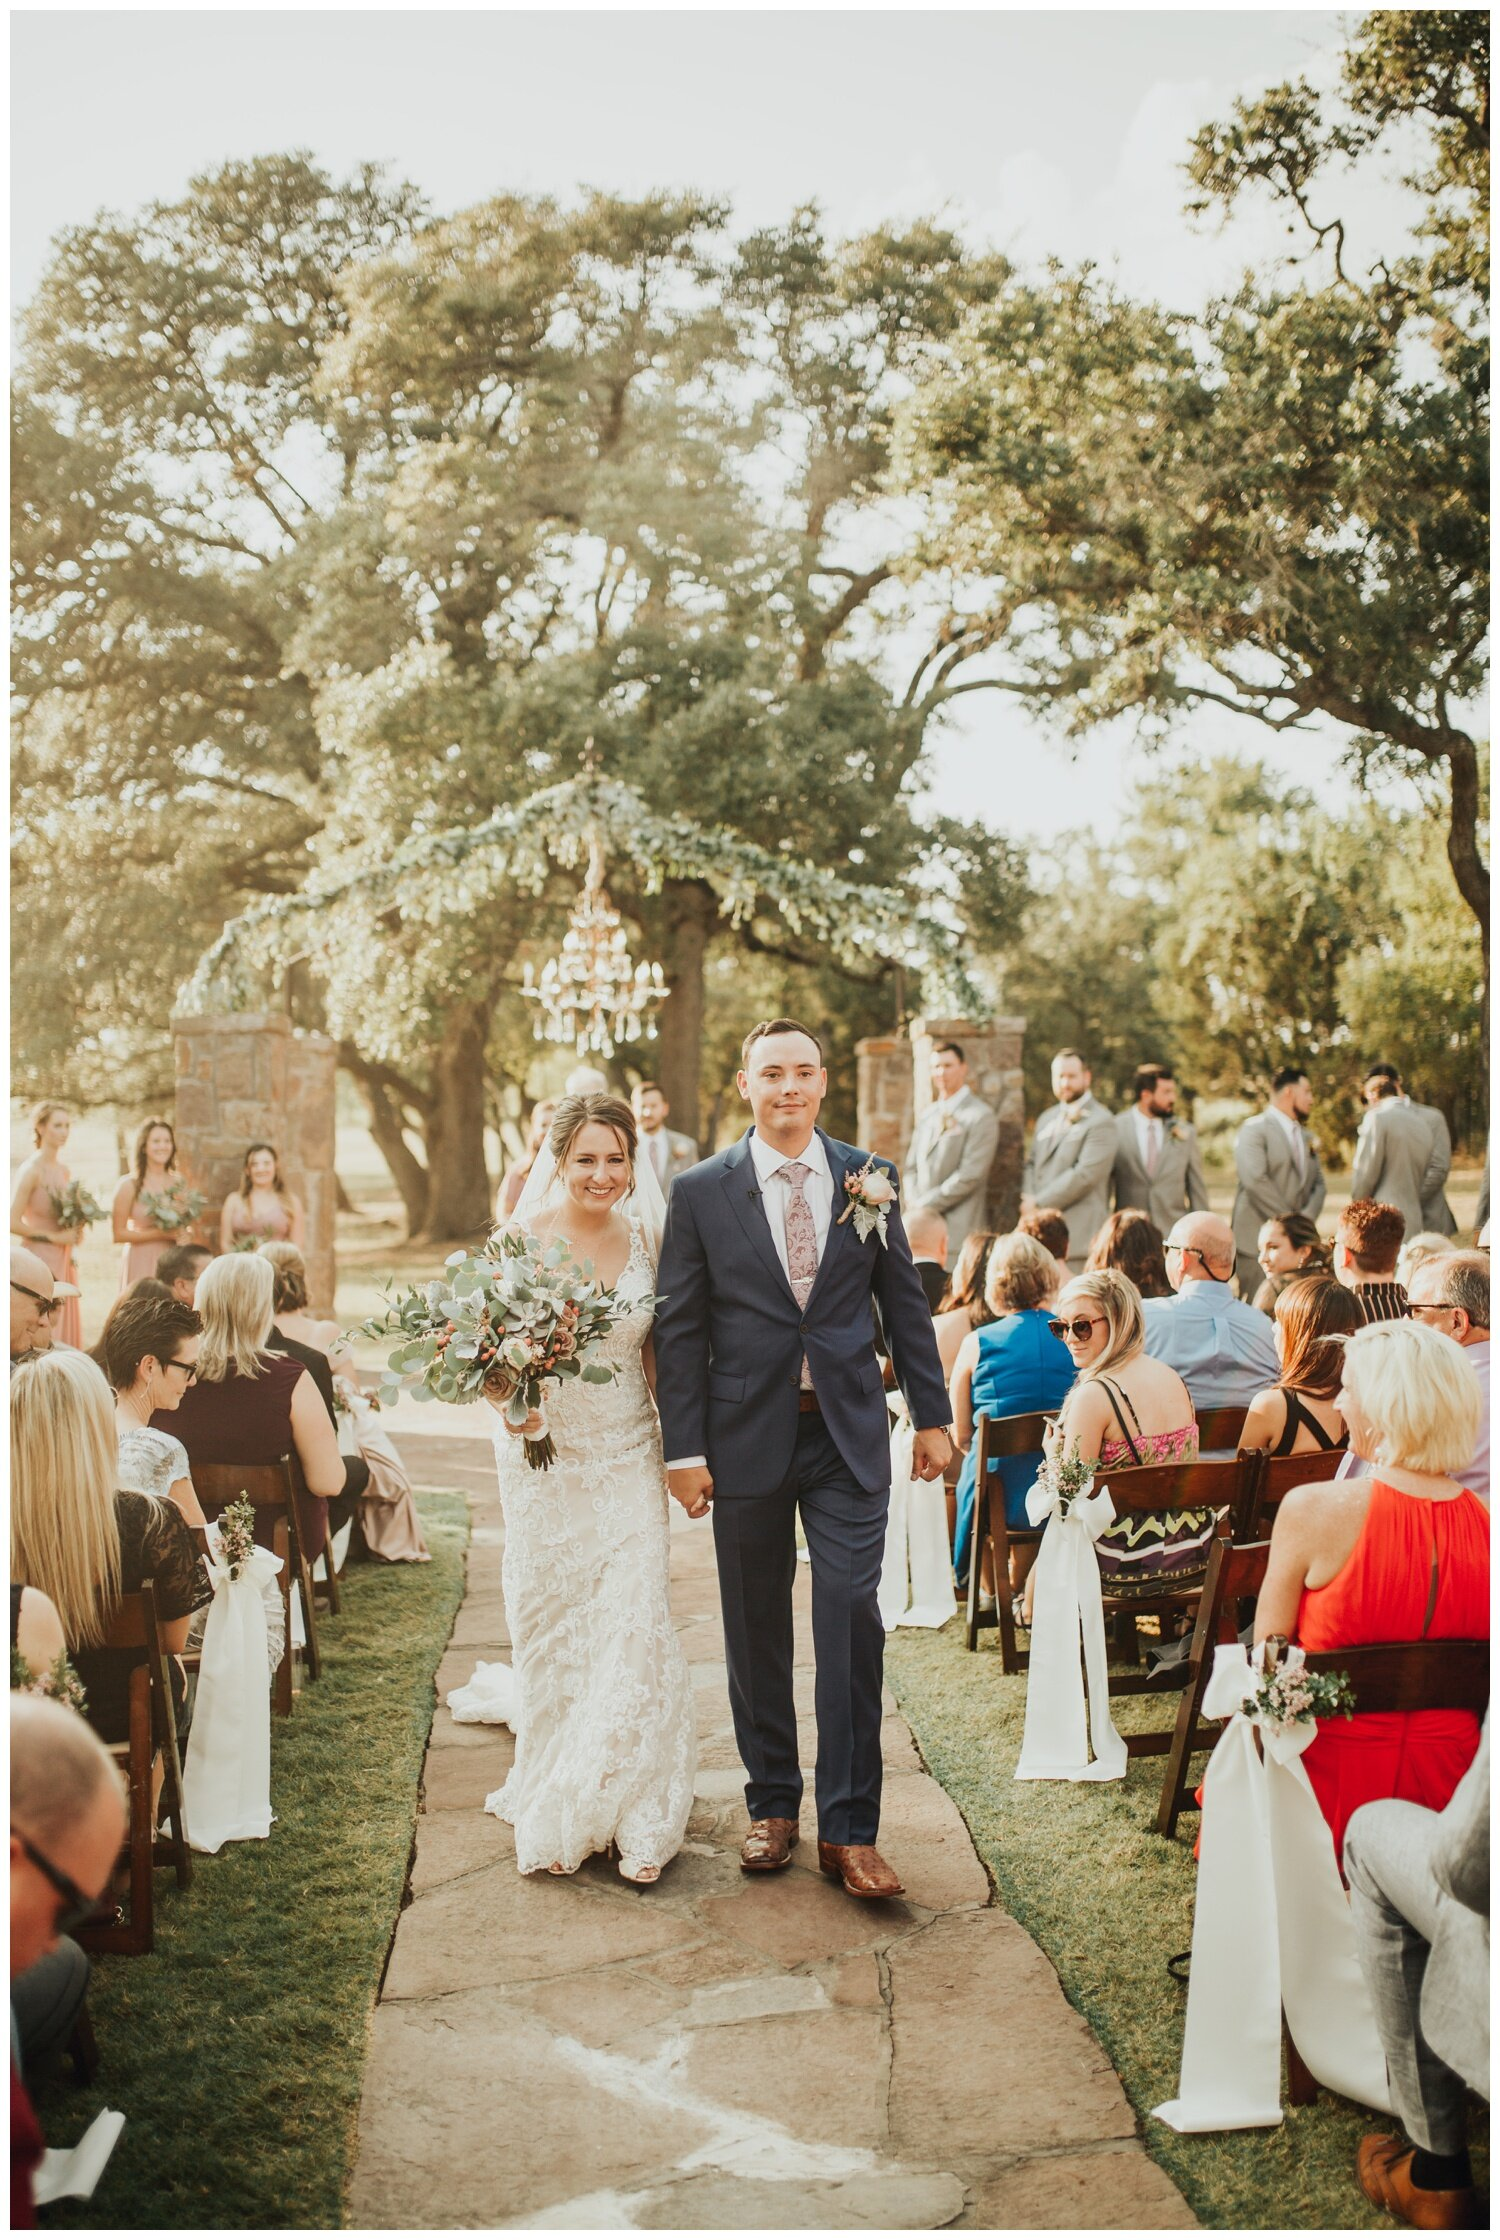 Modern Wedding at Ma Maison in Dripping Springs, Austin, Texas (Joshua and Parisa – Austin Wedding Photographer)_0046.jpg